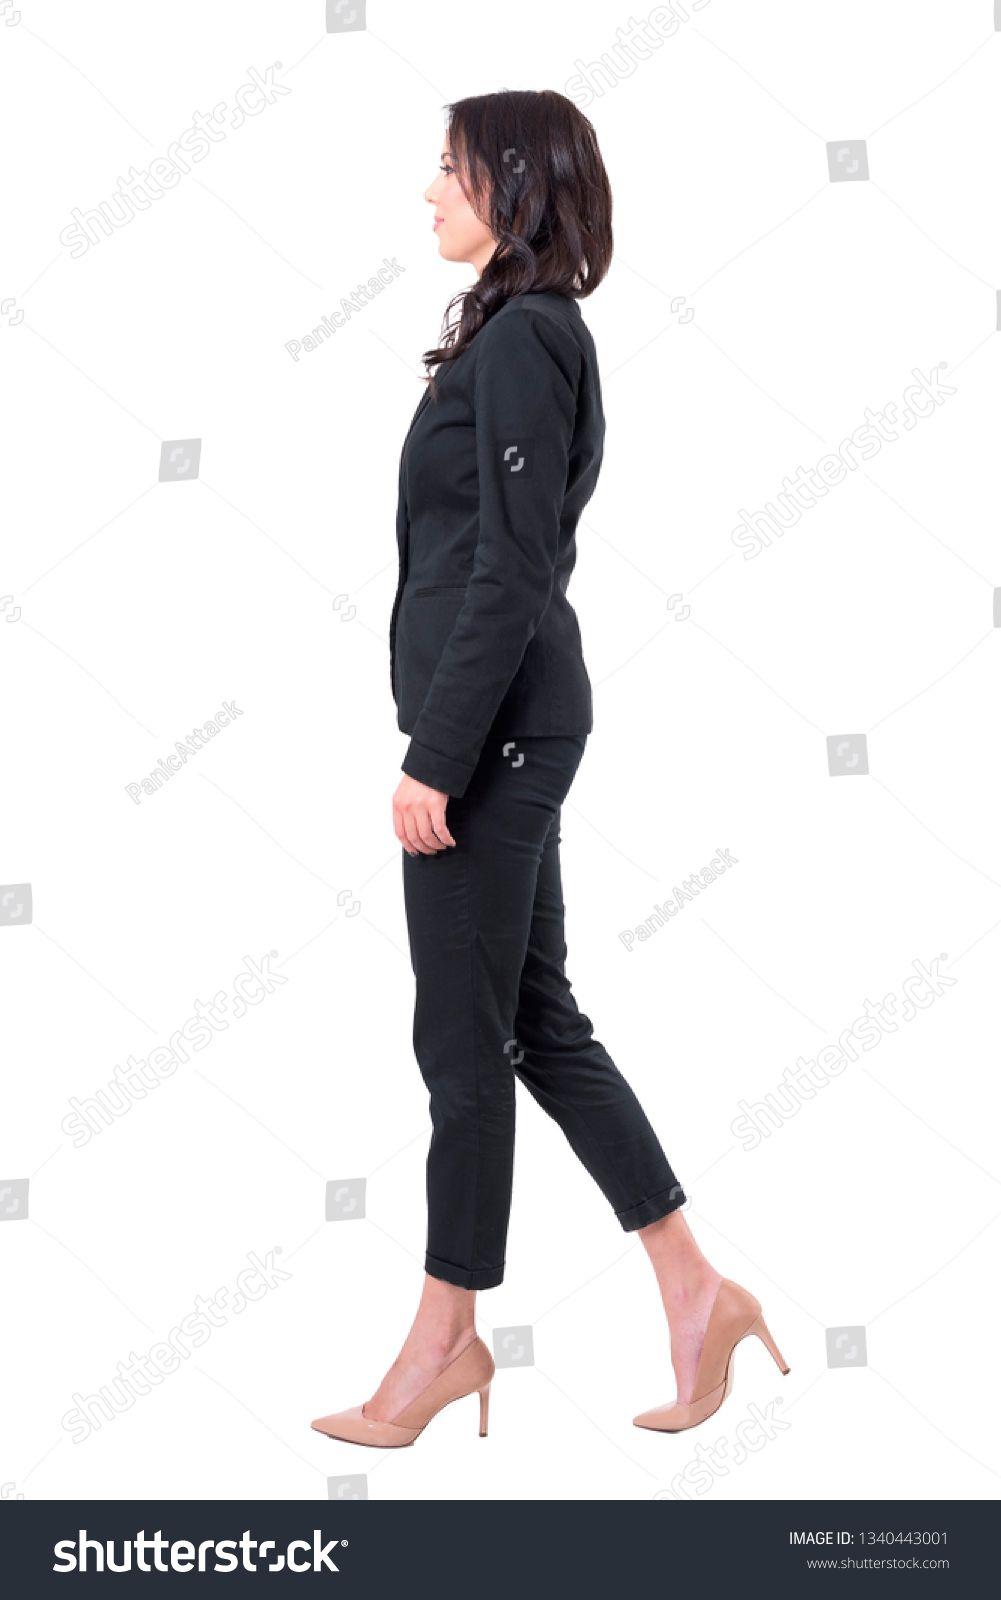 Profile View Of Elegant Business Woman In Suit Stepping Forward Full Body Isolated On White Background Ad Ad Busin With Images Suits For Women Business Women Women